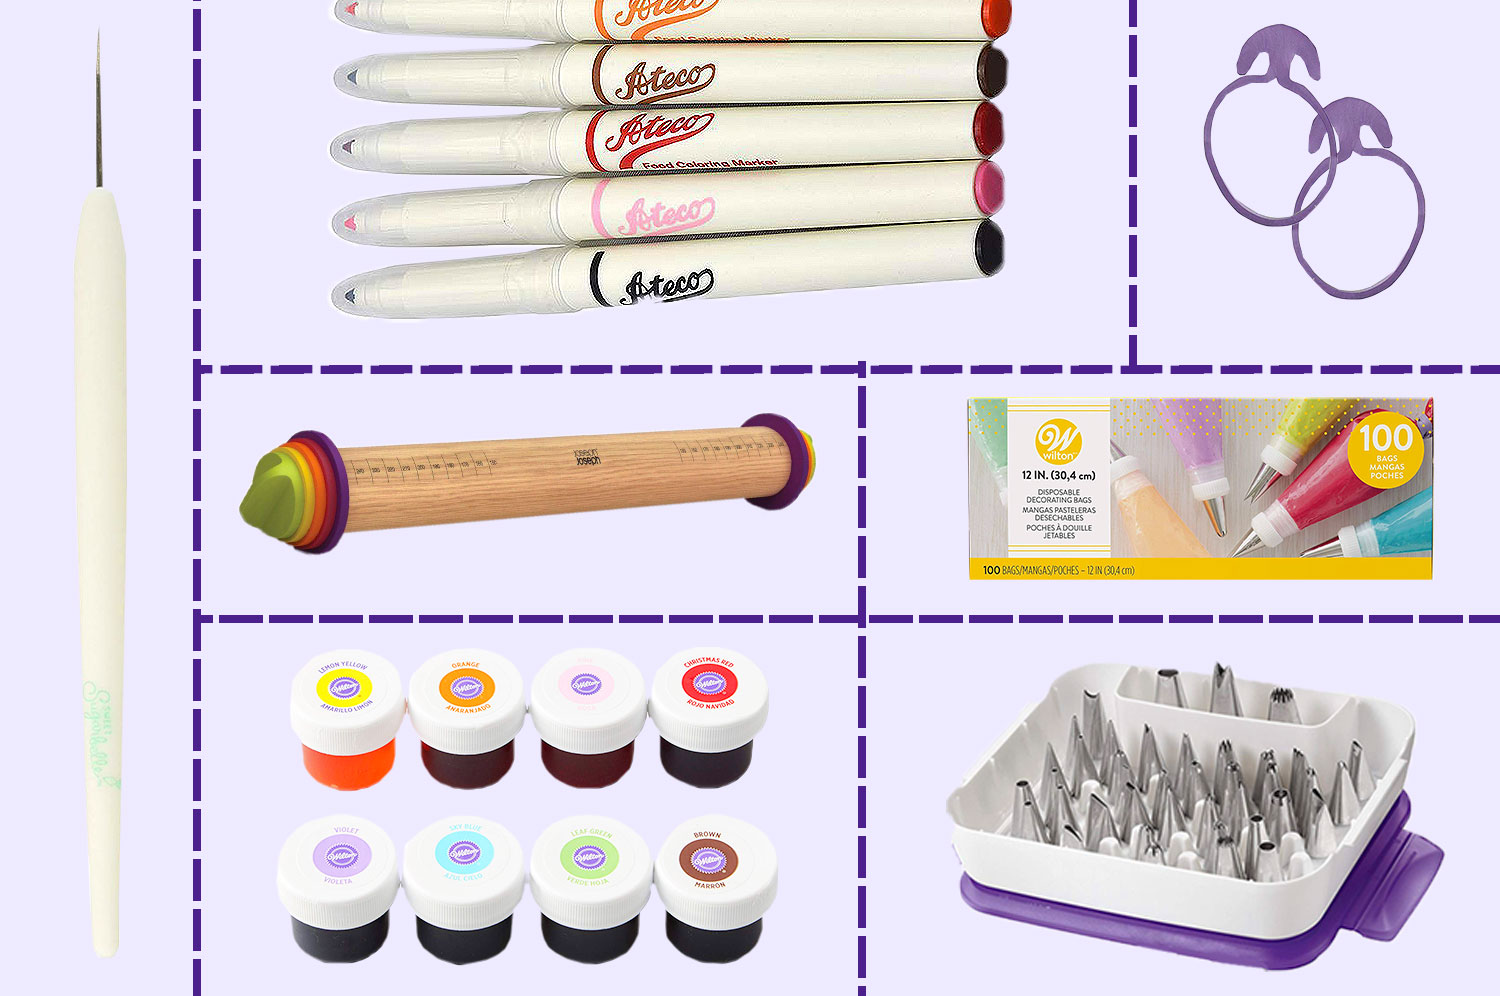 A rolling pin, piping tips, food coloring, edible paint pens, a package of piping bags, and a scribe tool laid out in a grid on a lavender background